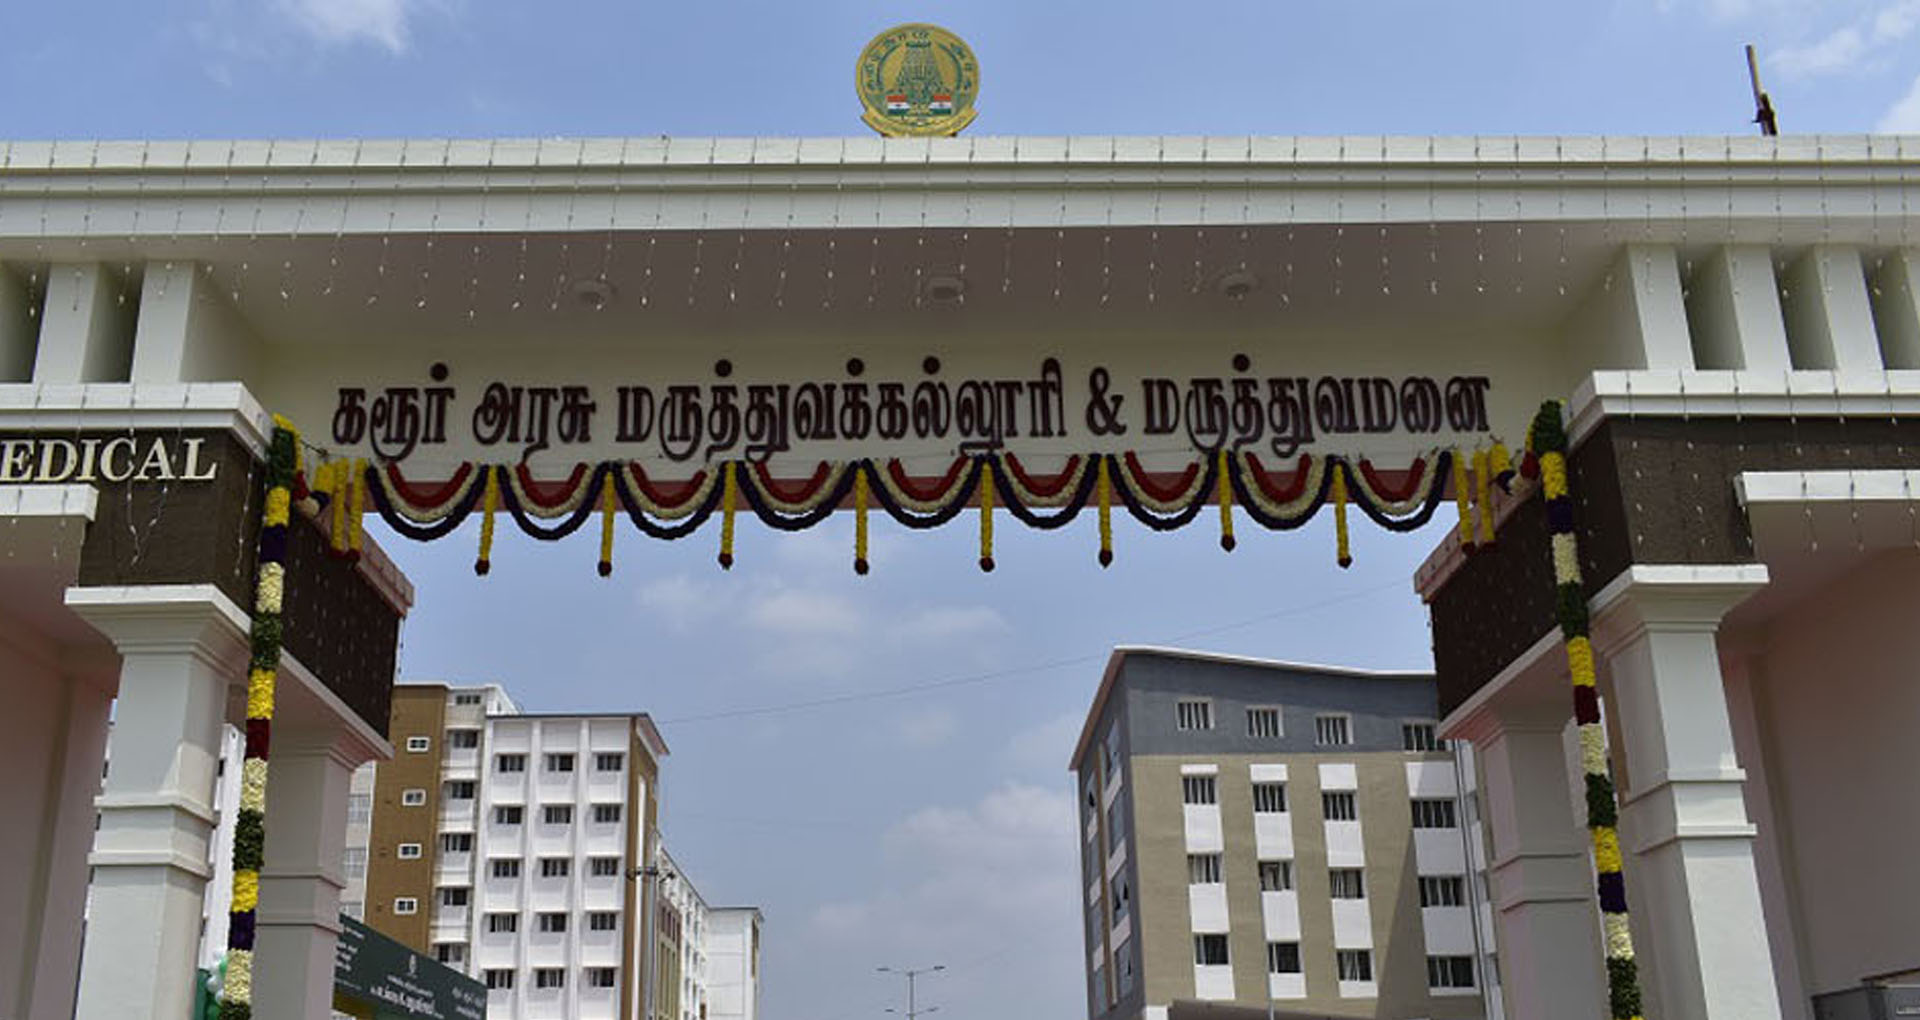 Government Medical College and Hospital, Karur